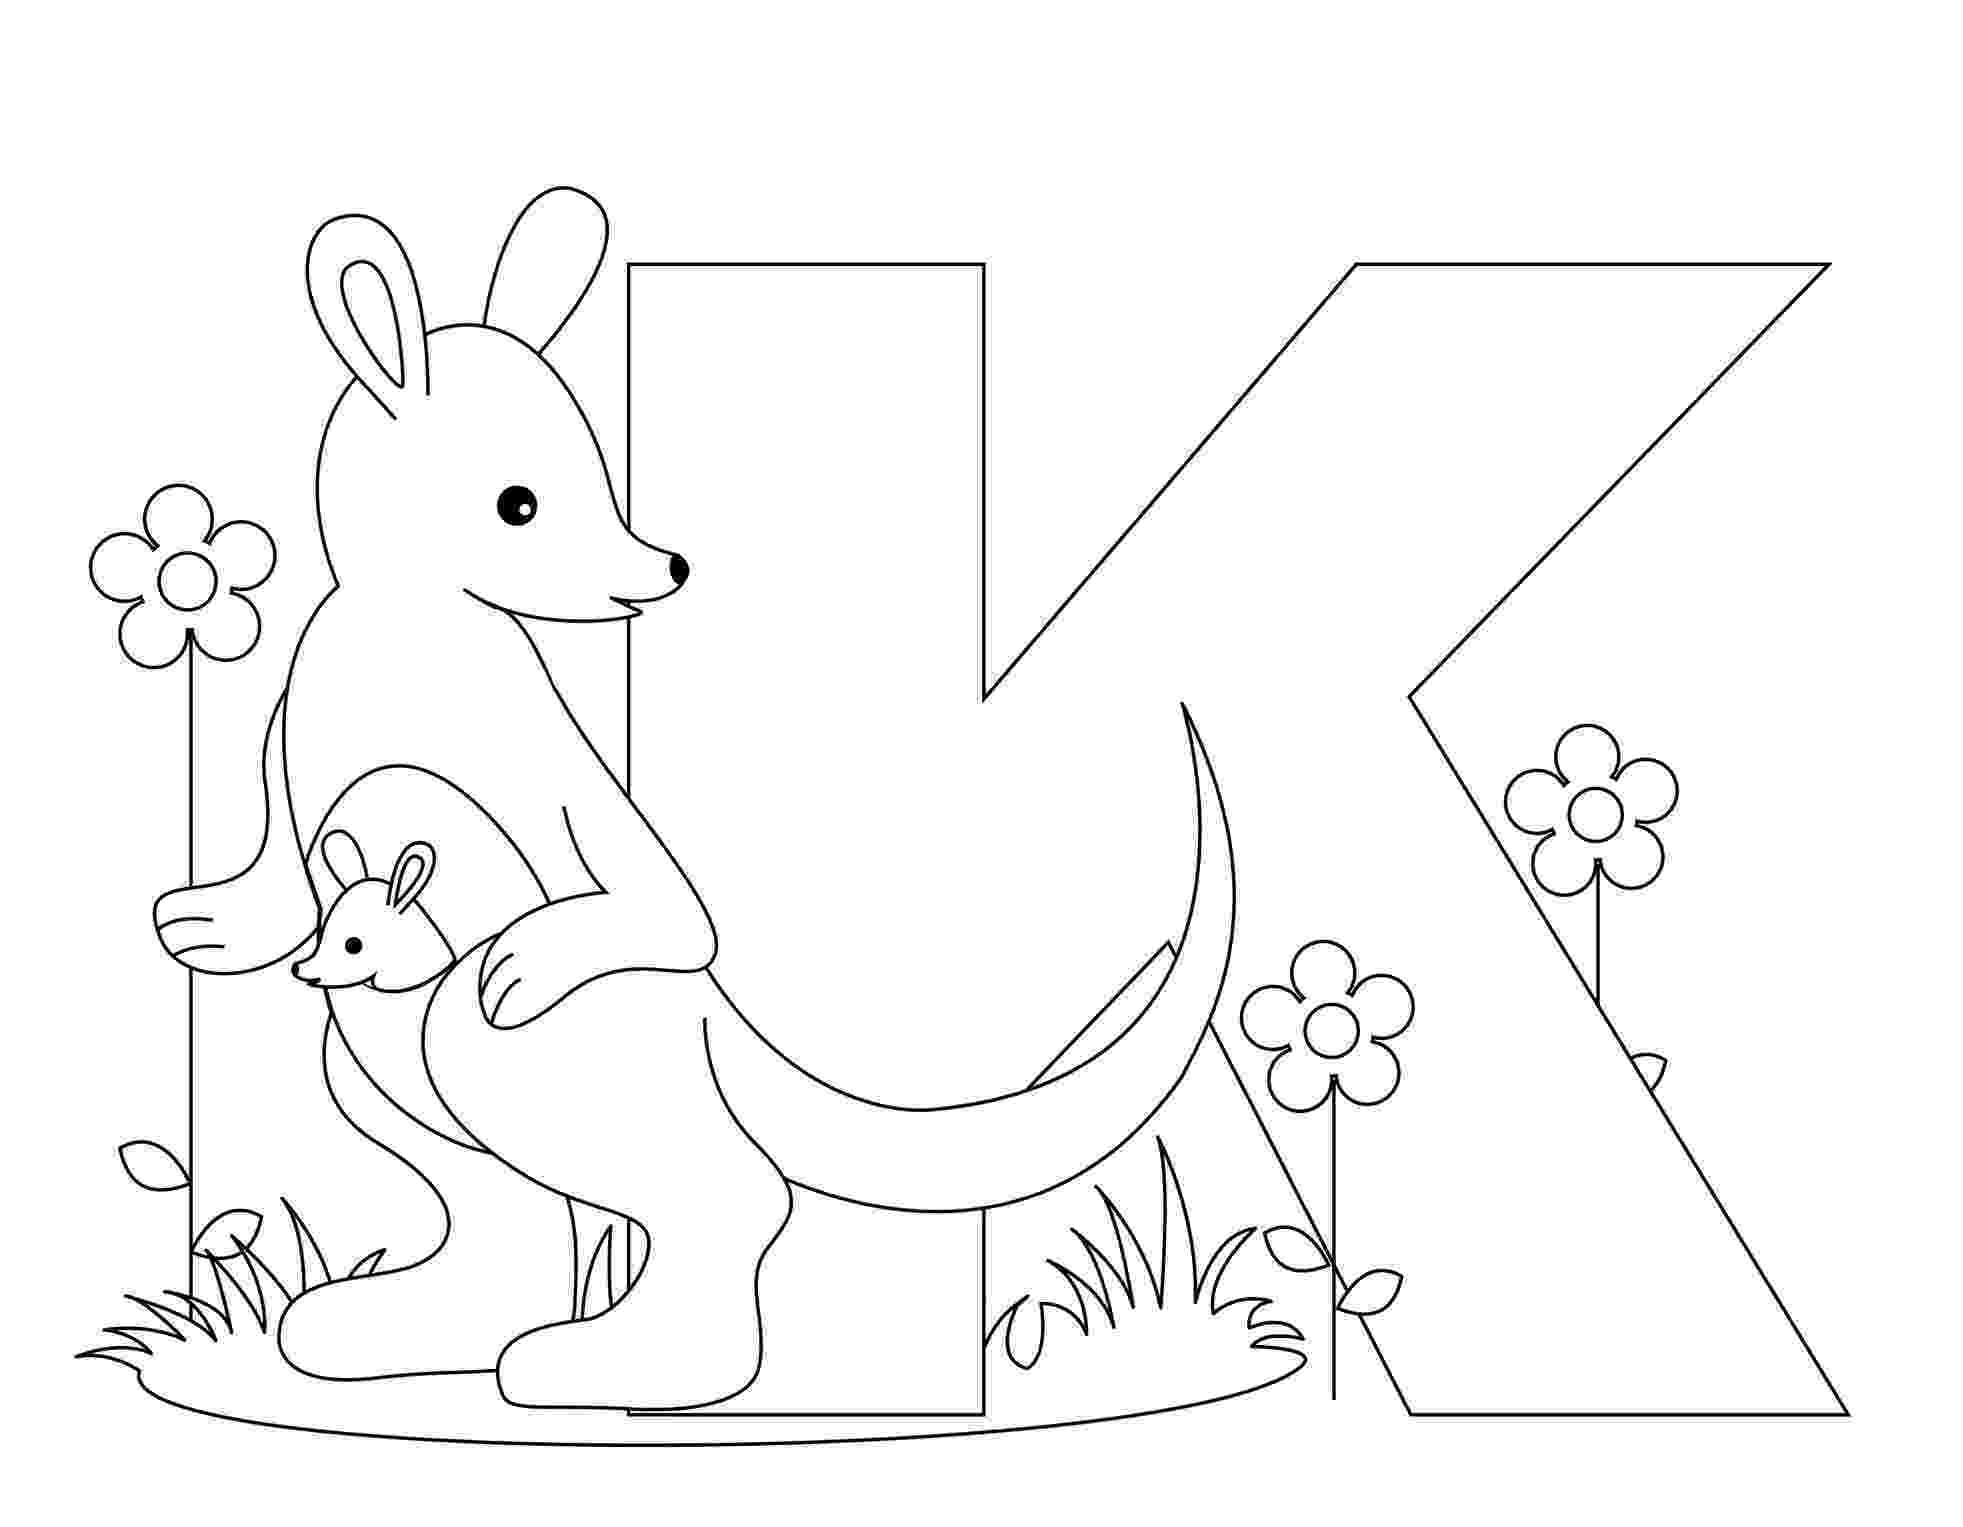 alphabet coloring pages for preschoolers letter s coloring pages to download and print for free preschoolers coloring pages for alphabet